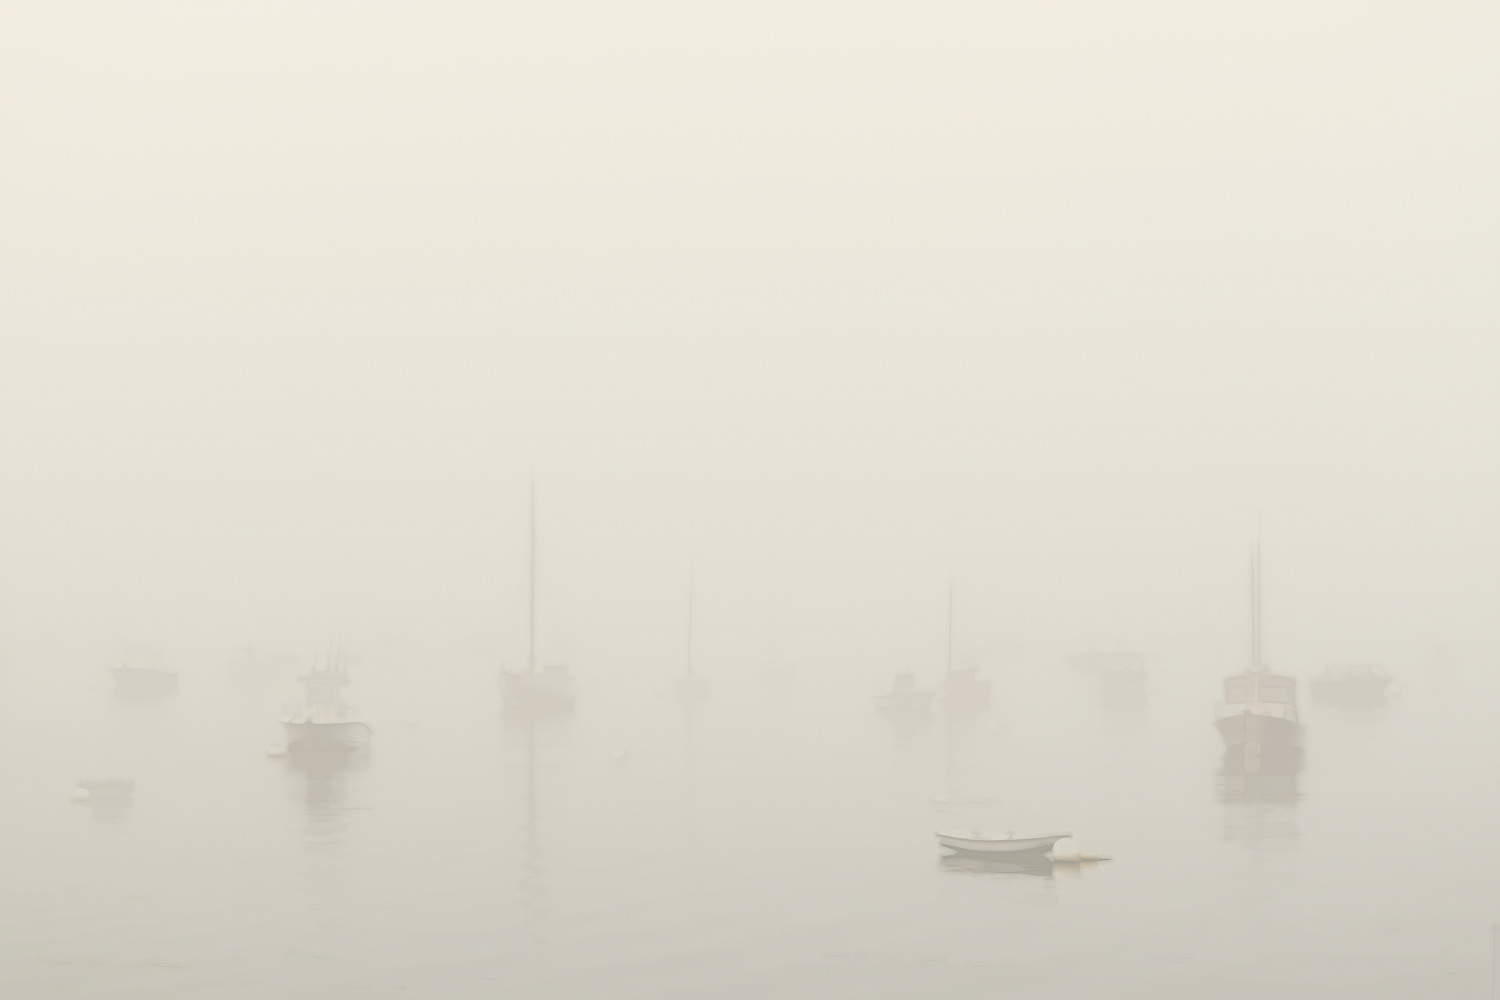 Foggy morning by Alan Brown